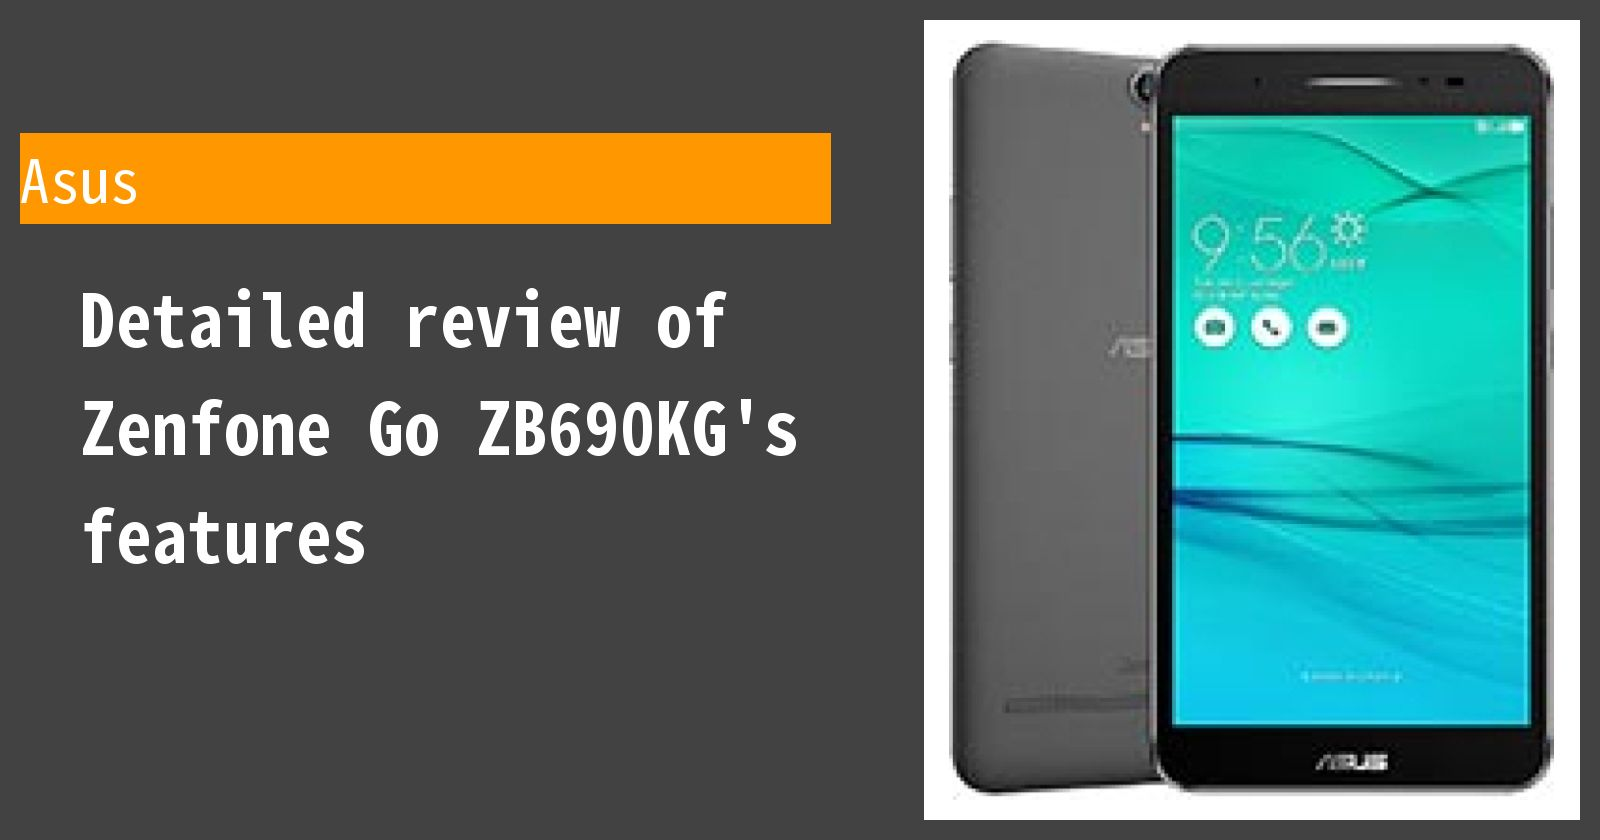 Detailed review of Zenfone Go ZB690KG's features